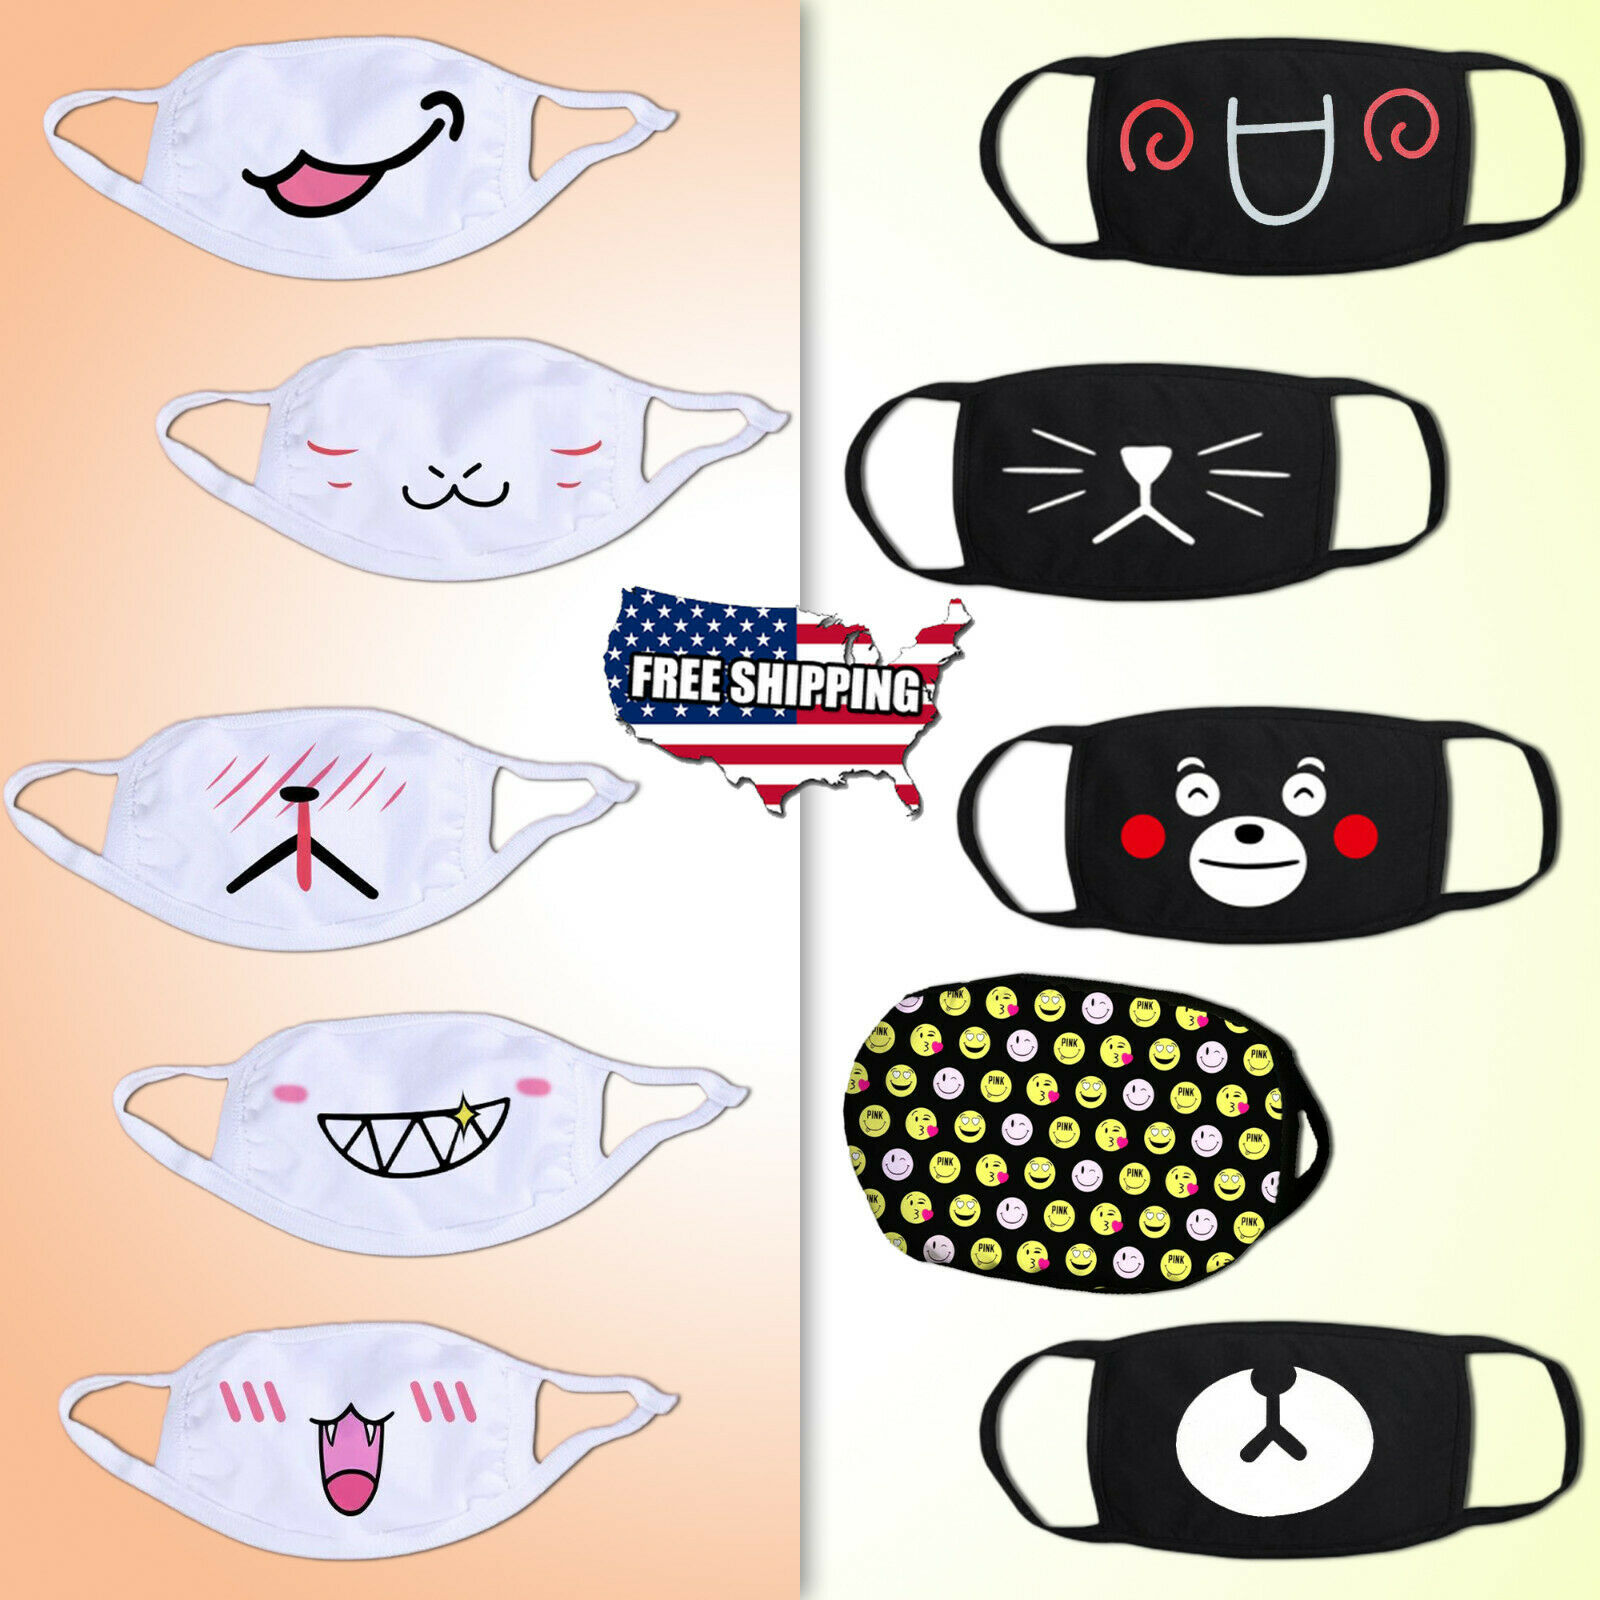 Washable Reusable Cute Face Masks Cartoon Emoji Adult Cotton Cloth Mouth Cover Accessories